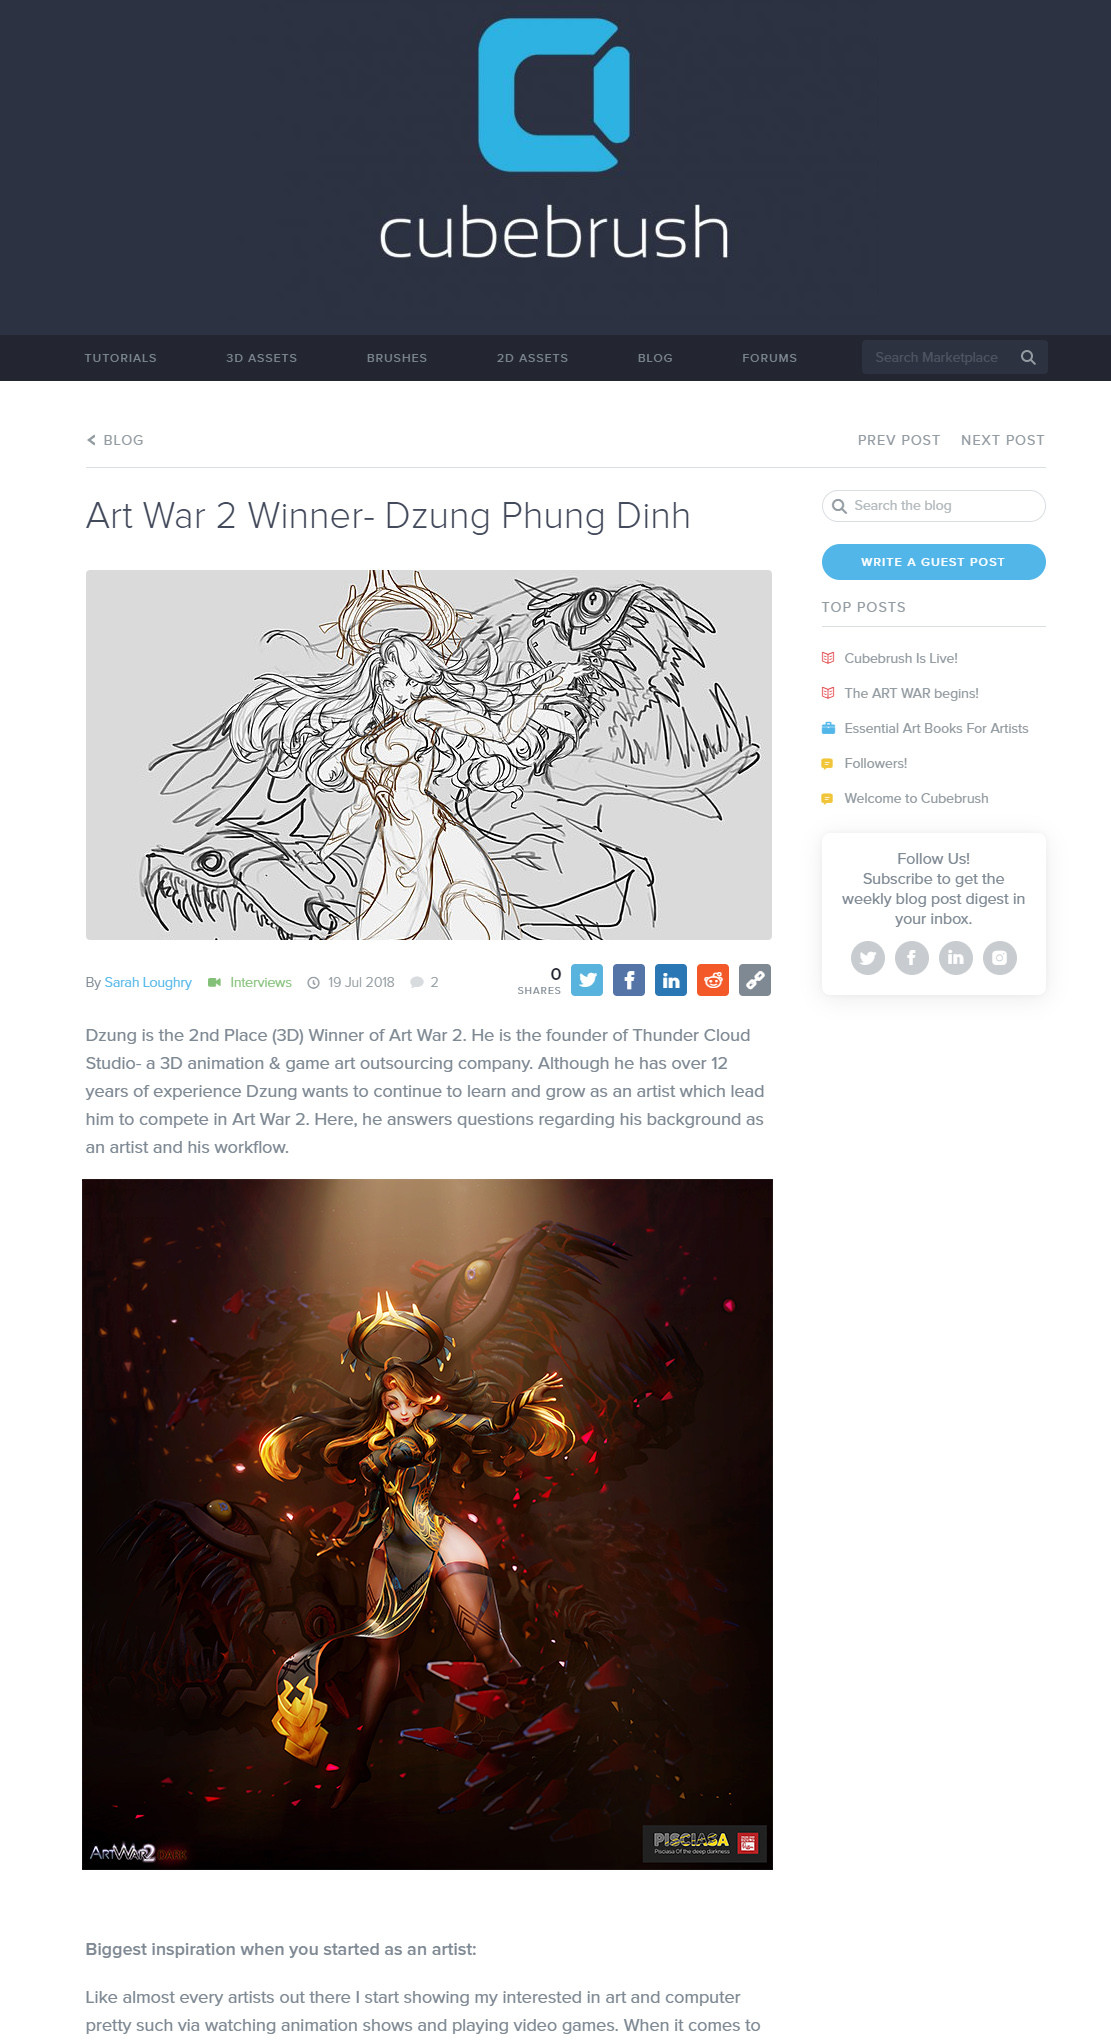 Dzung phung dinh cubebrush interview